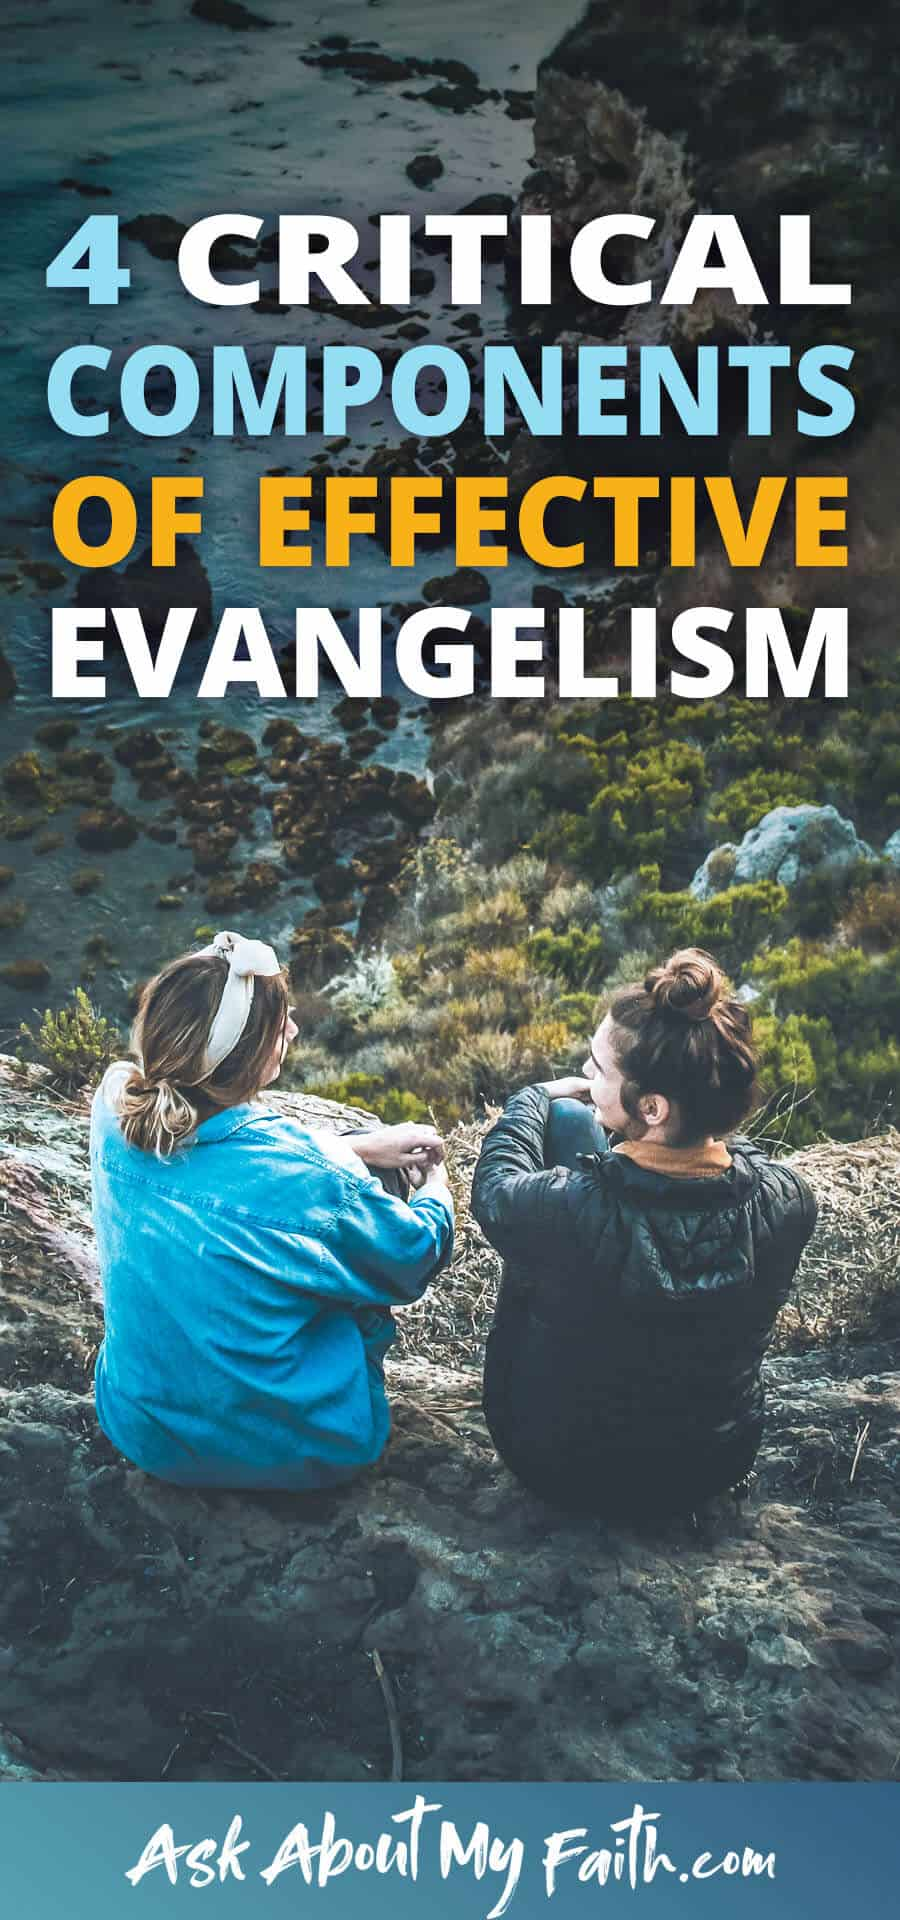 4 Critical Components of Effective Evangelism | 4 Crucial Tips for Sharing the Gospel | 3 Things to Look for (and 1 to avoid) | Evangelism Tips and Resources | Christian Faith